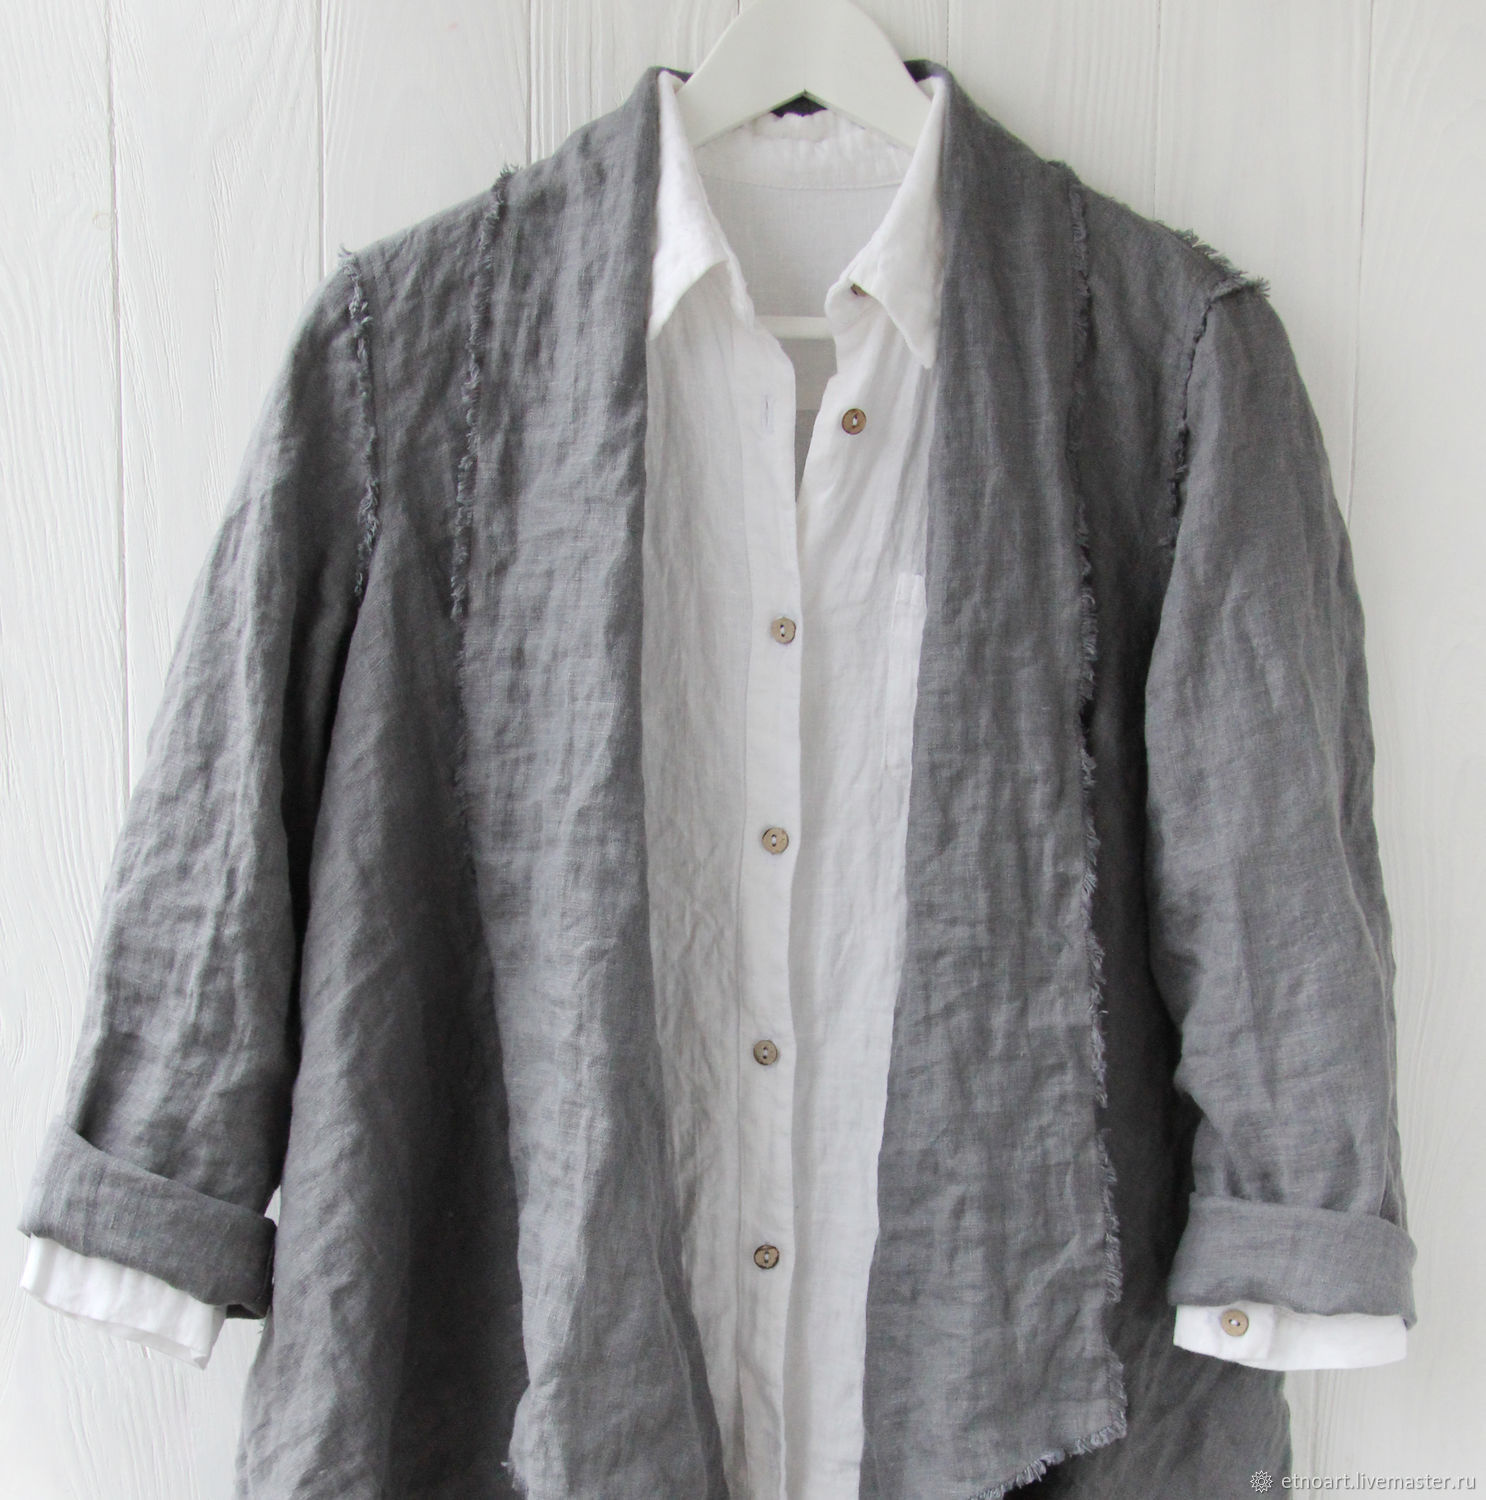 Smoky linen cardigan with open edges, Cardigans, Tomsk,  Фото №1